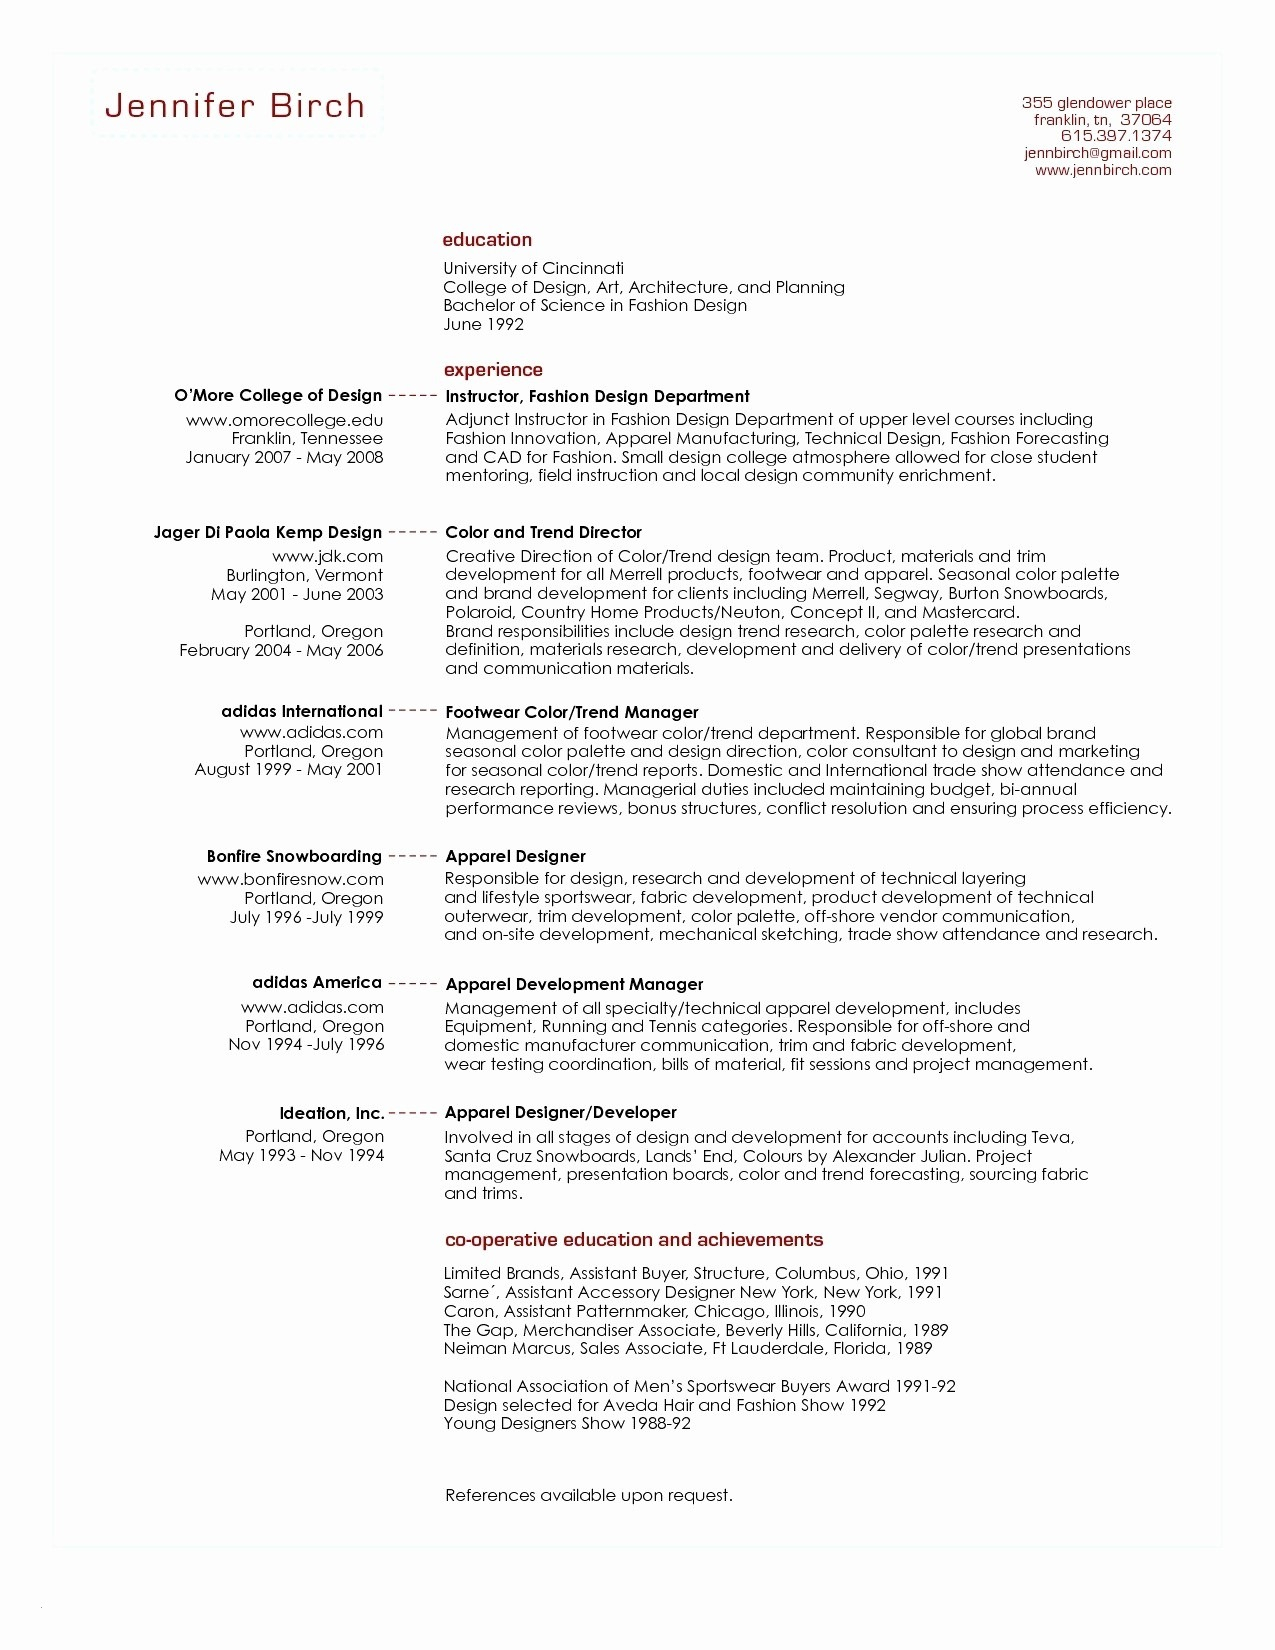 assistant mechanic resume example-Personal assistant Resume Sample New Elegant Resume Cv Executive Sample Luxury Resume Examples 0d Cv 15-e